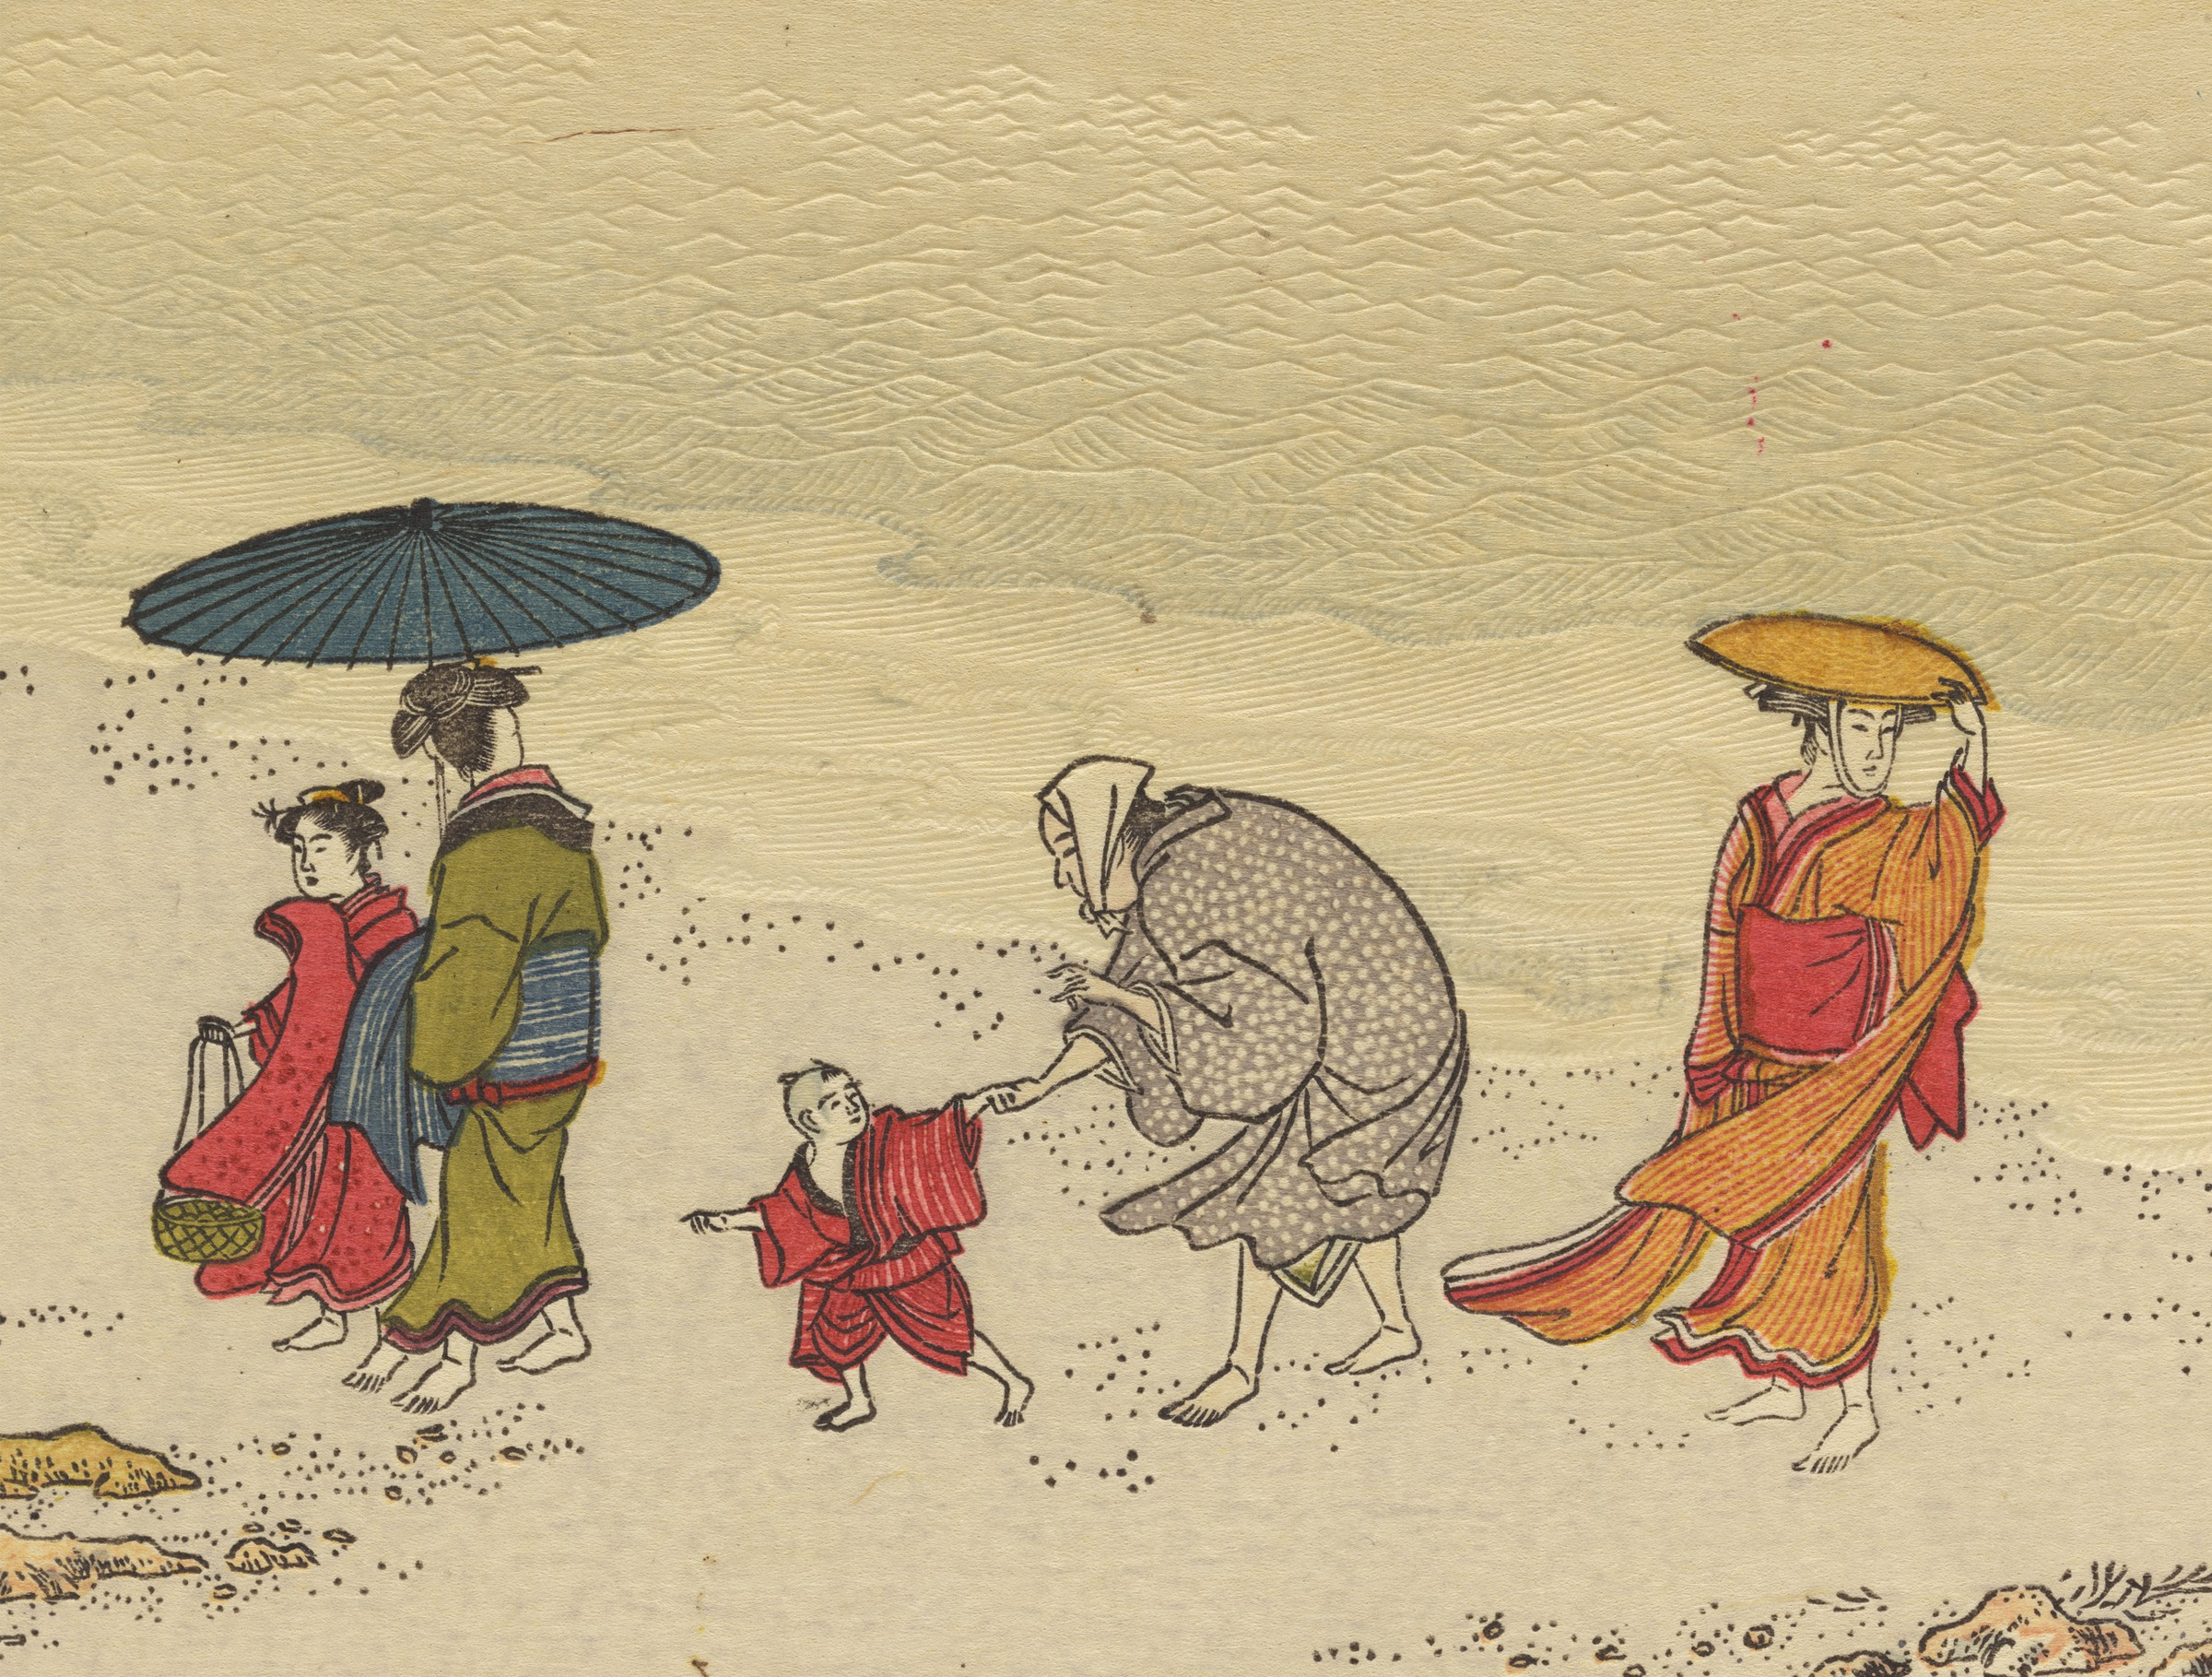 Page from the woodblock-printed book by Kitagawa Utamaro depicting figures on a beach.